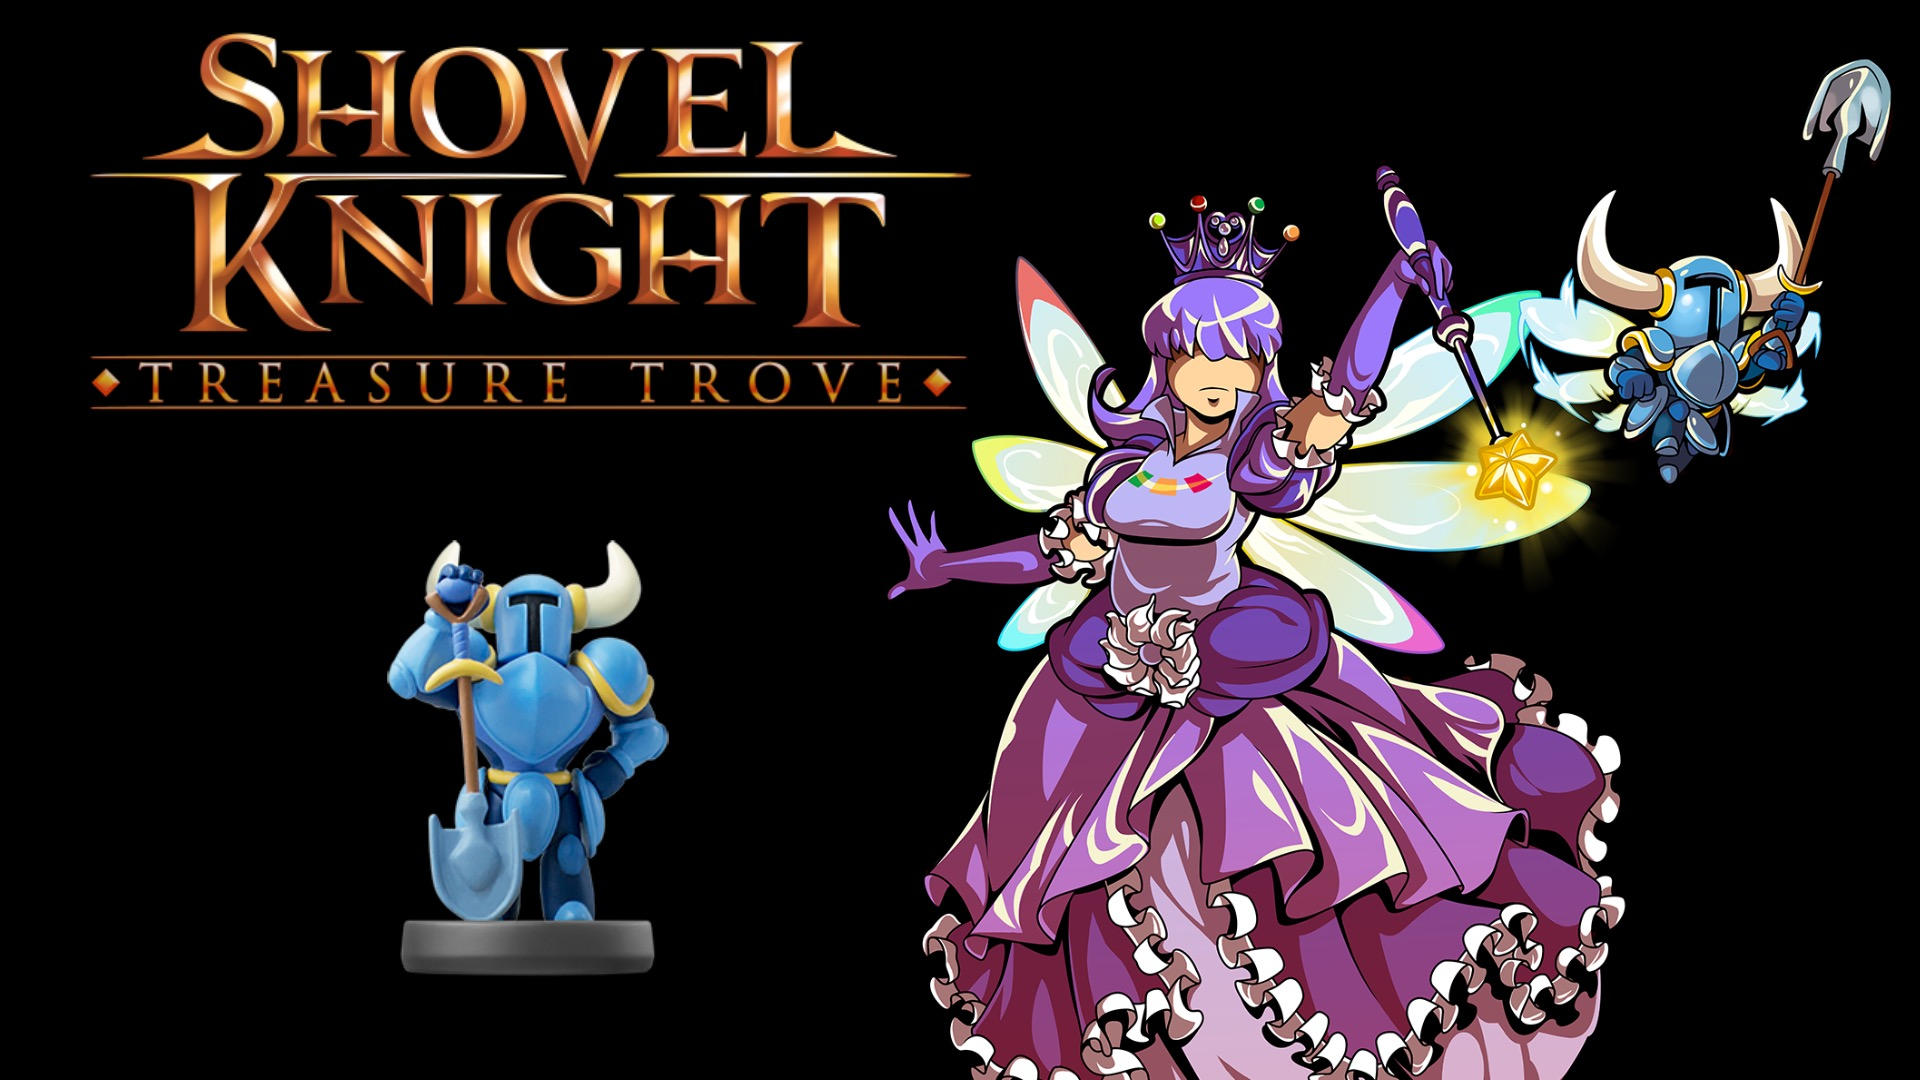 Shovel Knight S New Amiibo Function Is Off With The Fairies Mon